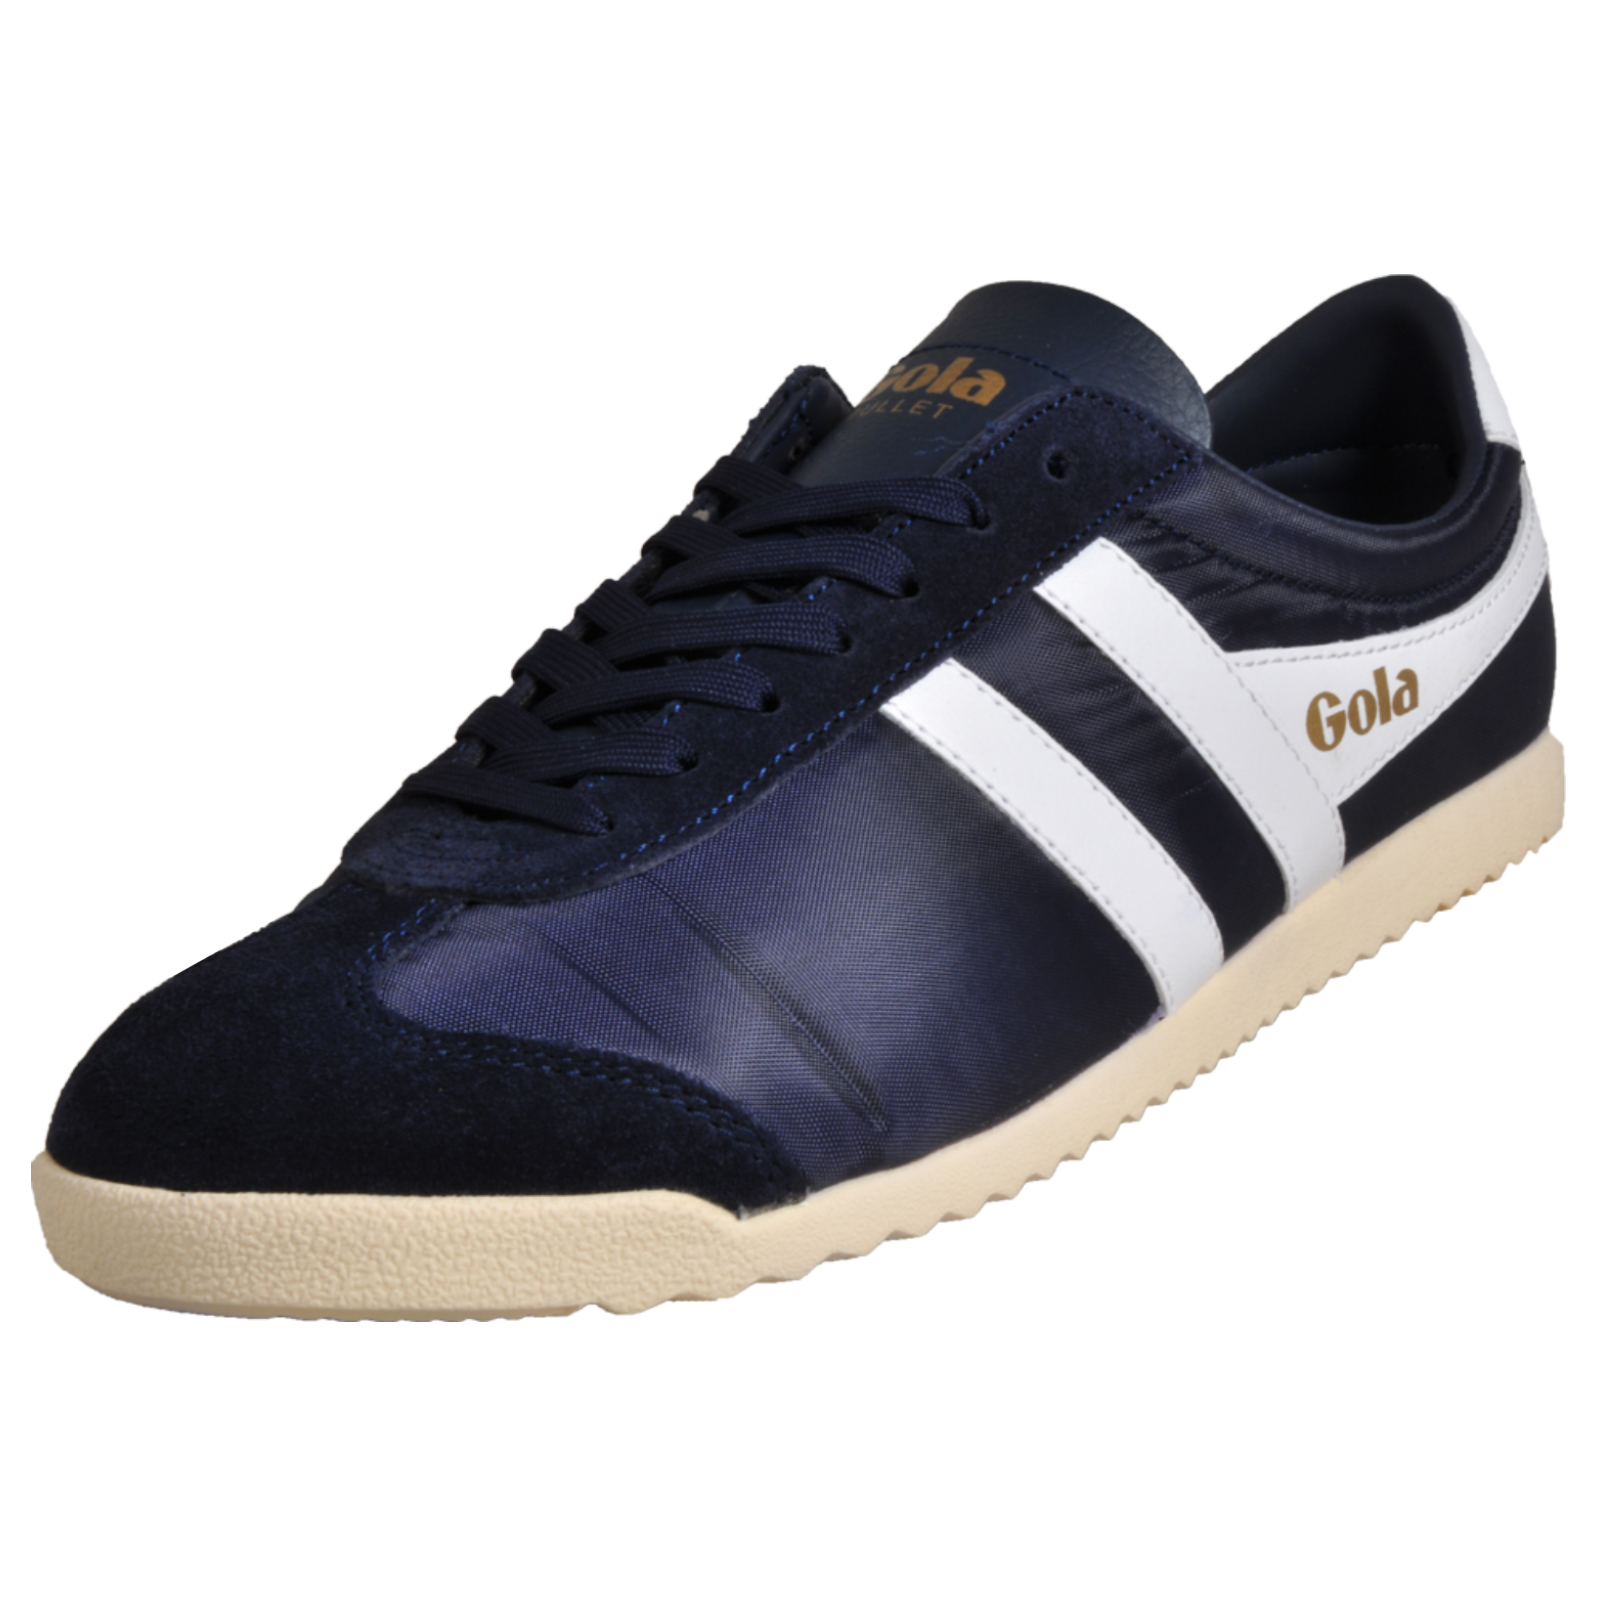 448c48167d7 Details about Gola Classics Bullet Nylon Men's Causal Retro vintage Fashion  Trainers Navy